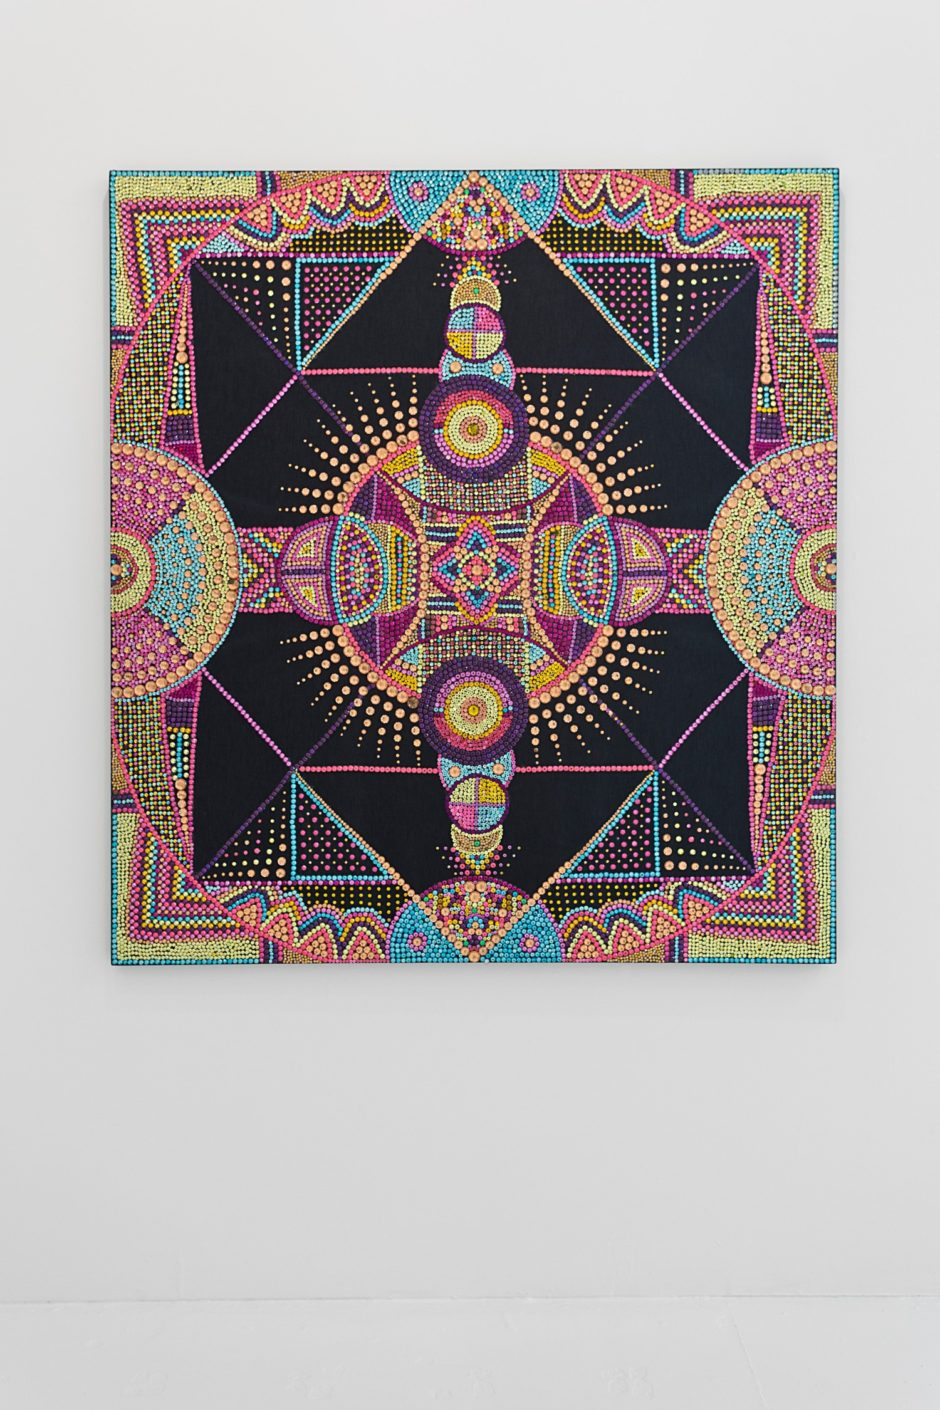 Evie Falci, Manipura, 2013, 66 x 60 inches